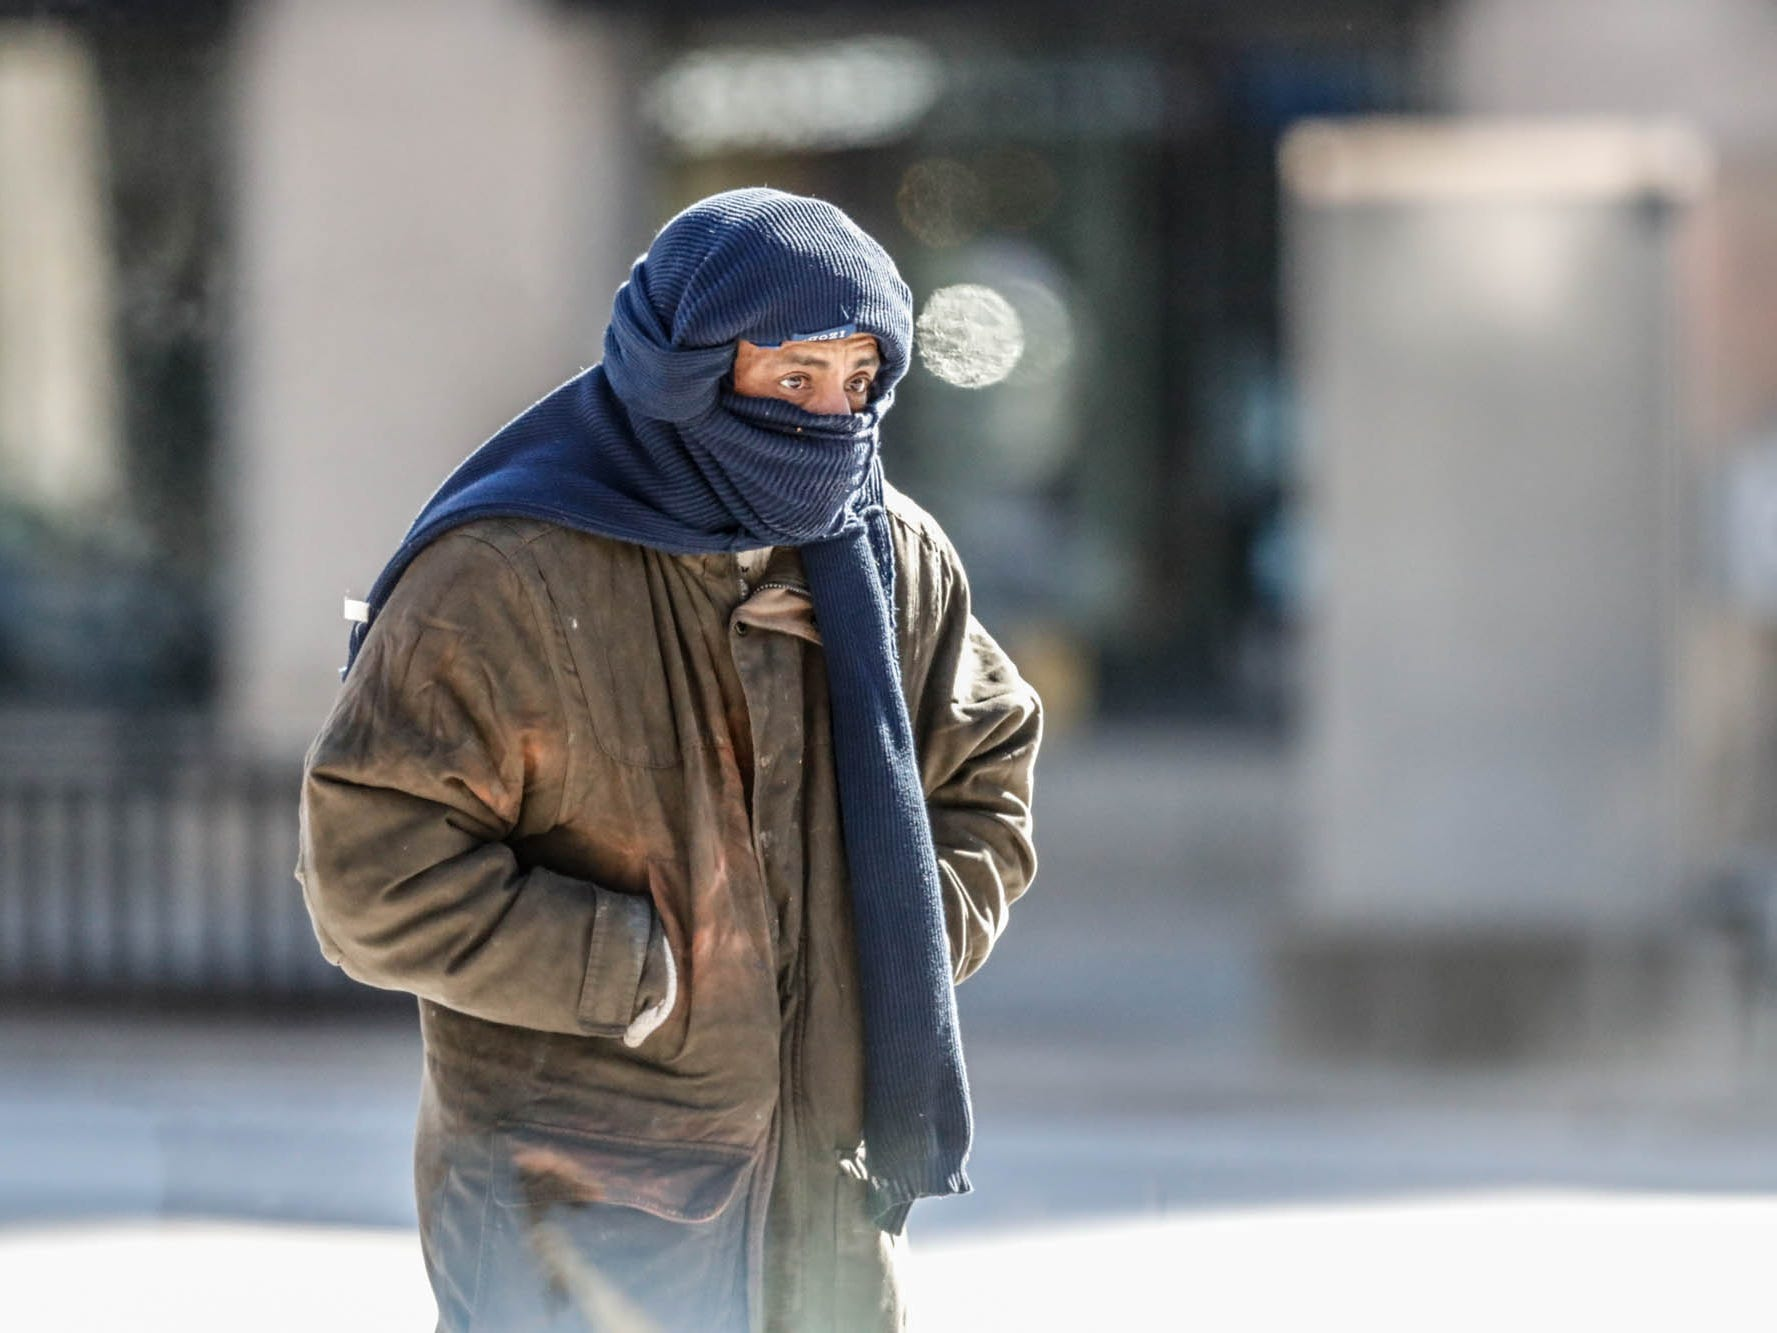 A man bundles up for the cold while walking in downtown Indianapolis on Wednesday, Jan. 30, 2019.